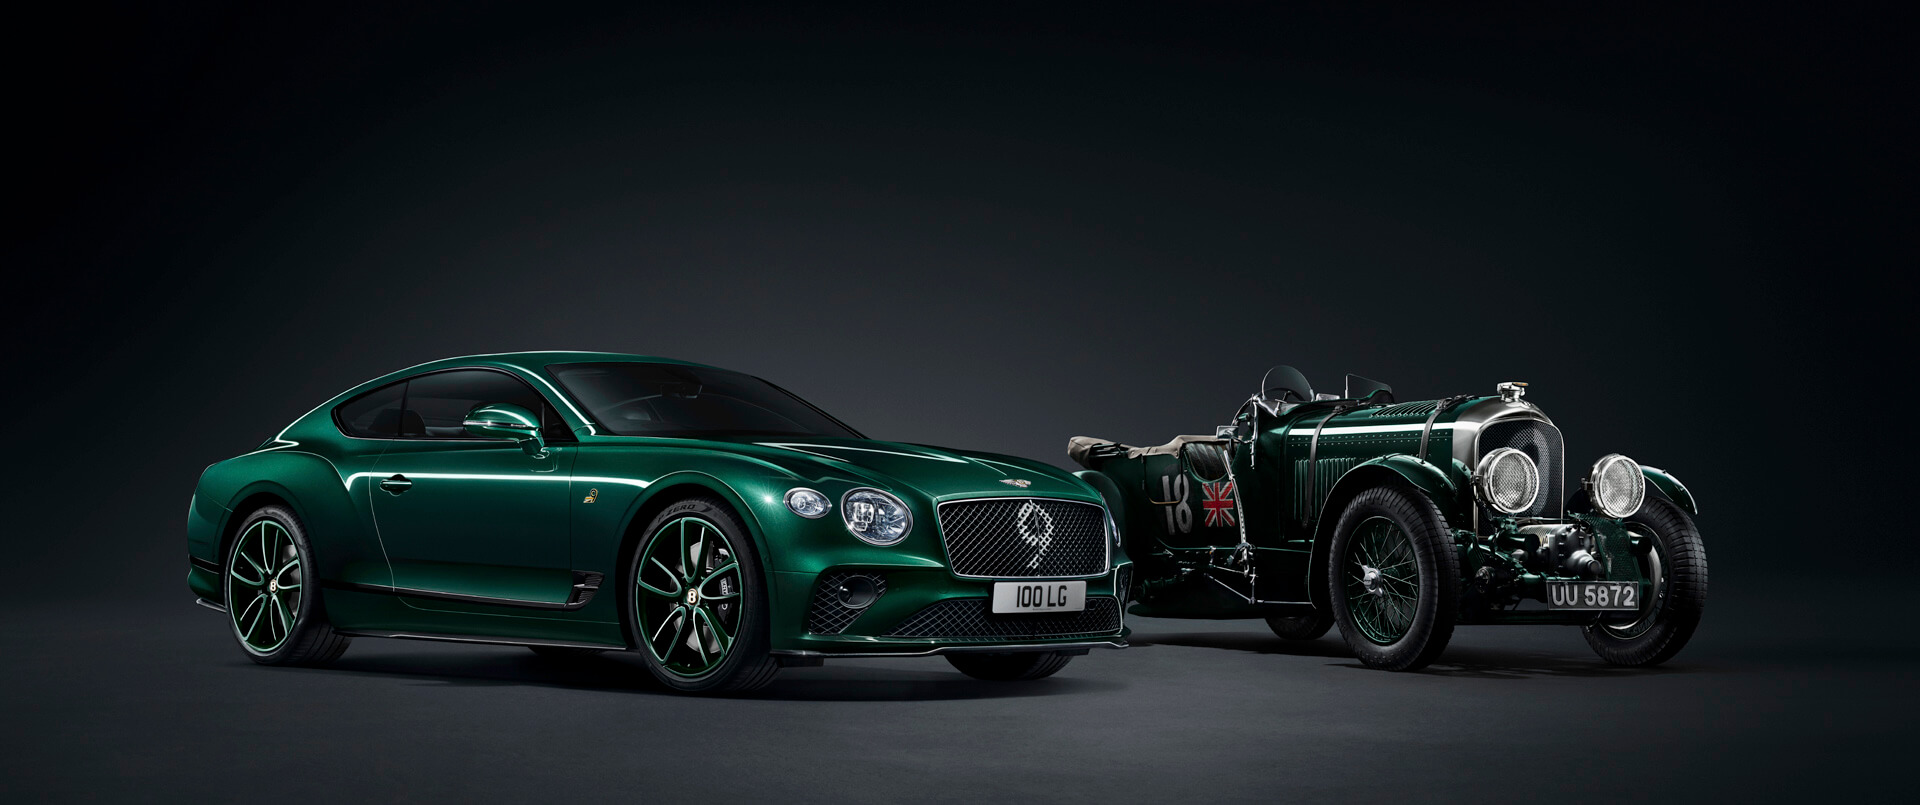 Continental Gt Number 9 Edition Mulliner Bentley Motors